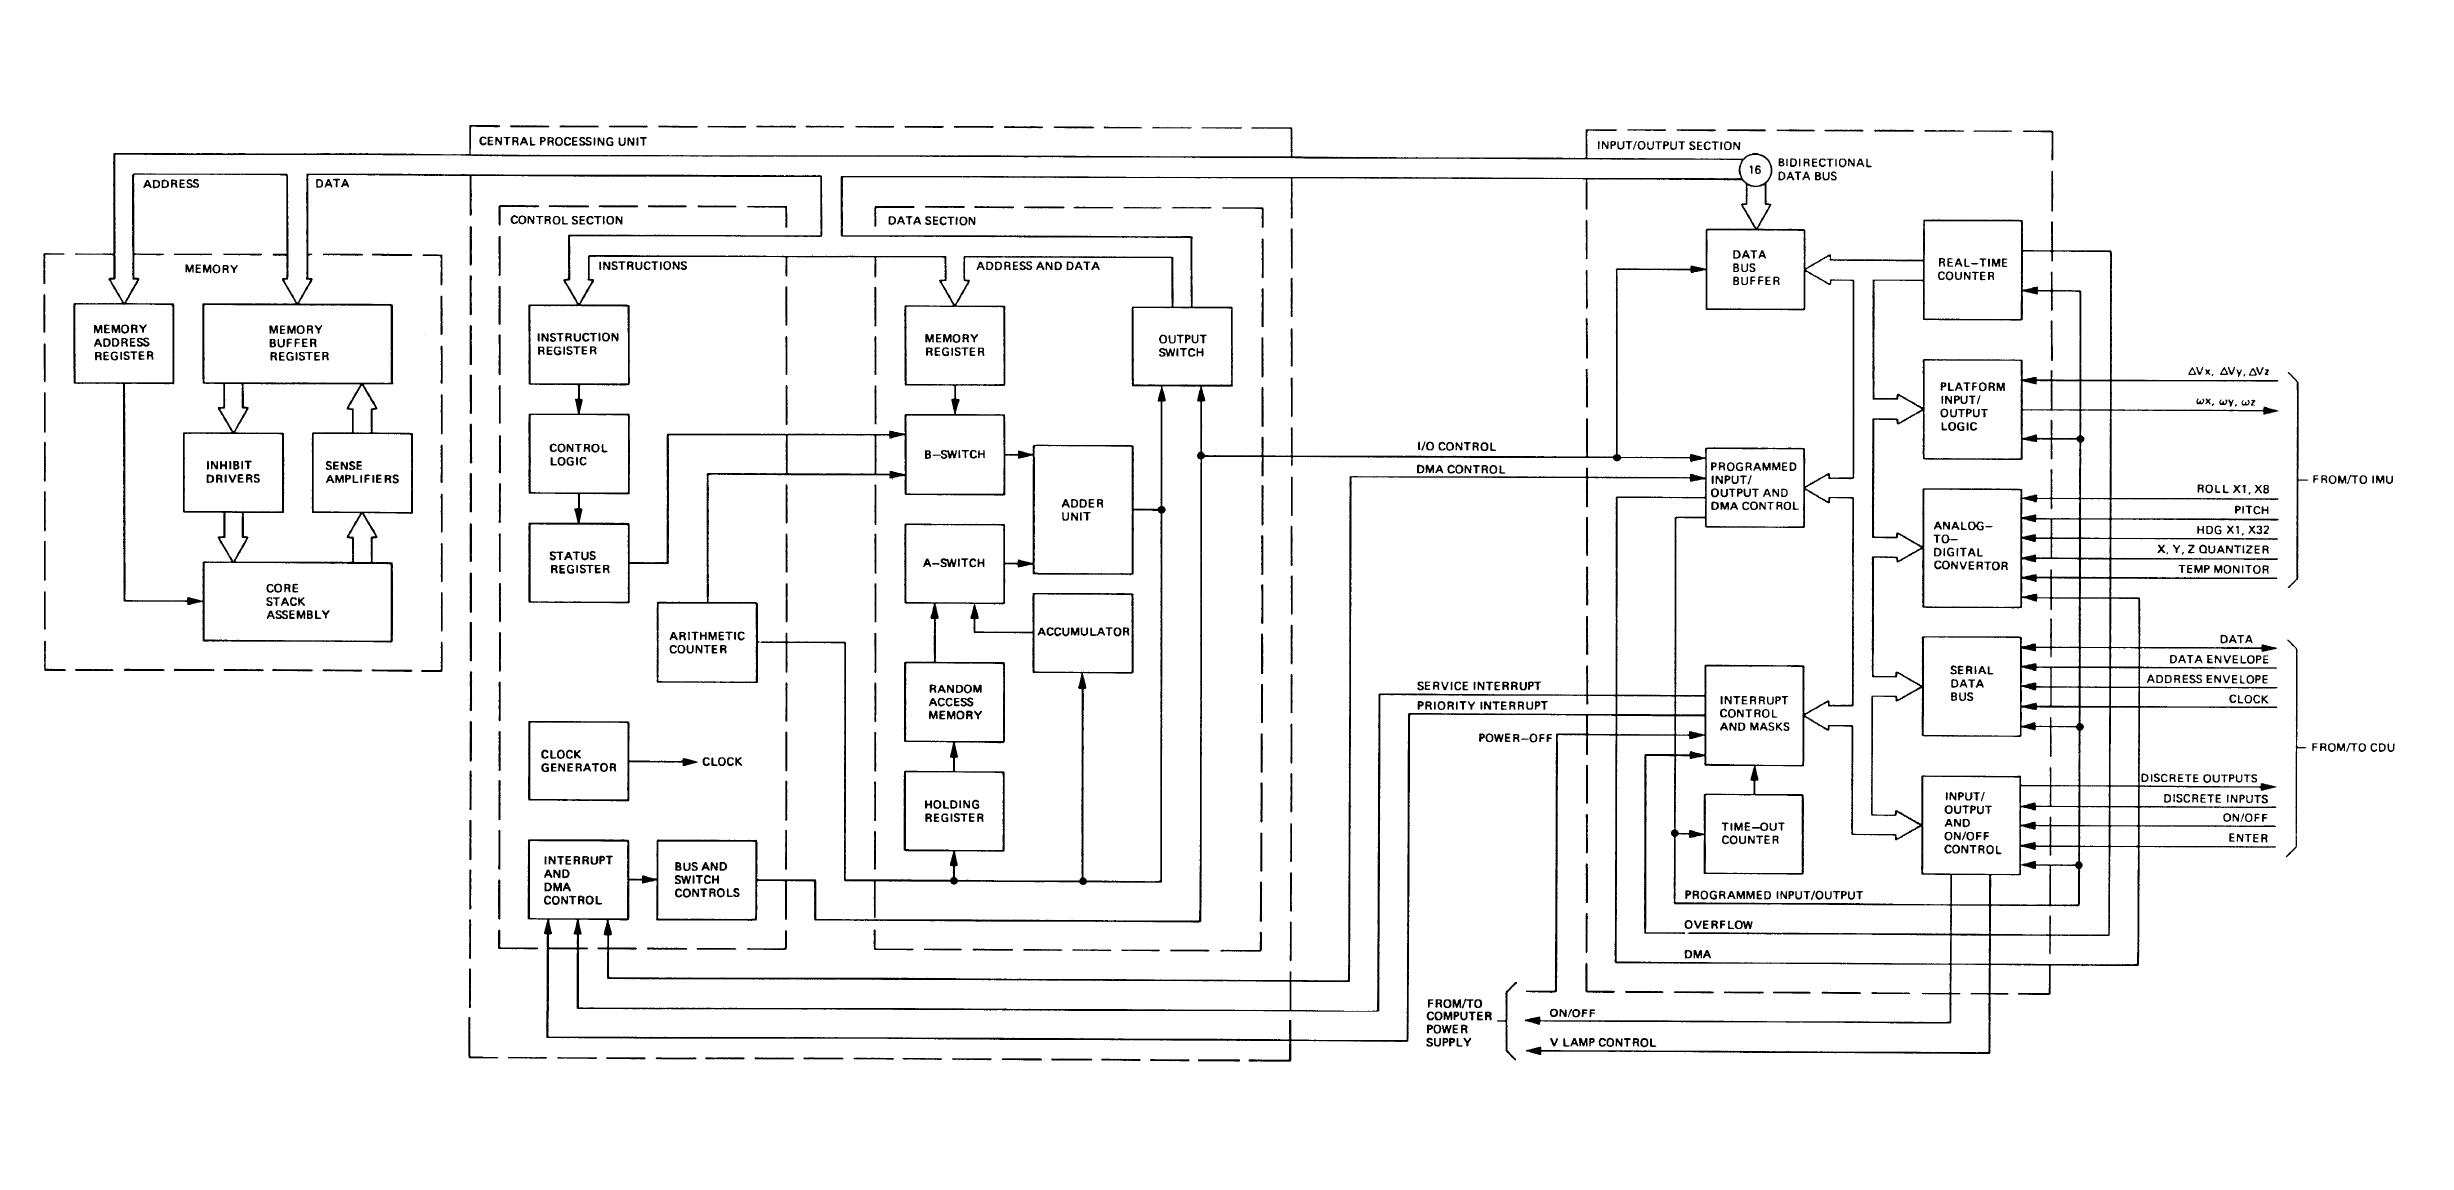 Figure Fo 2 Computer Functional Block Diagram